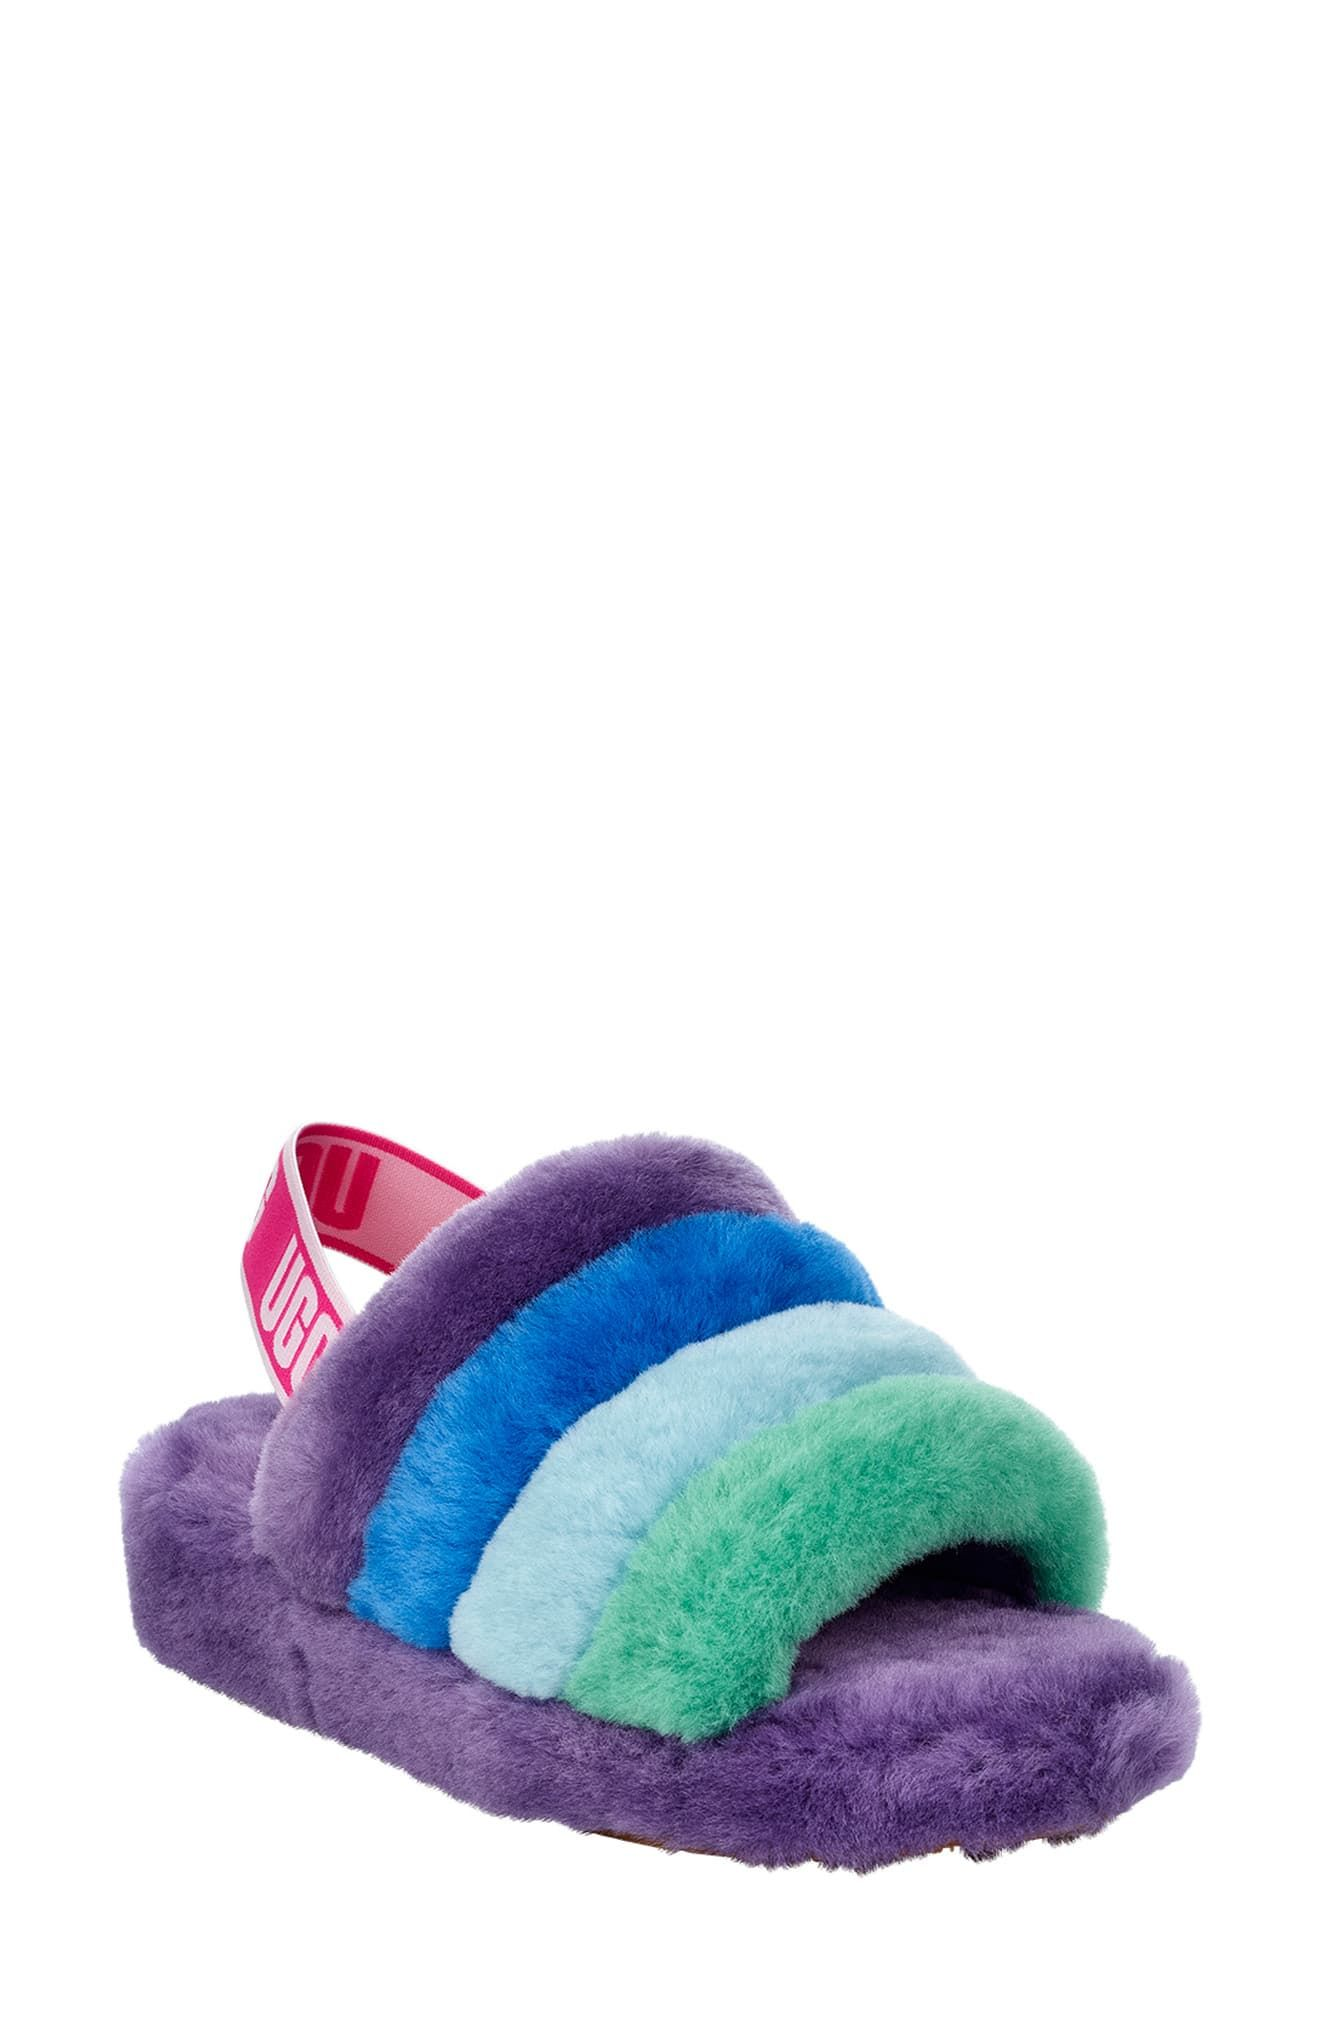 4c56db20e52 Women's Ugg Fluff Yeah Genuine Shearling Slide Slipper, Size 5 M ...